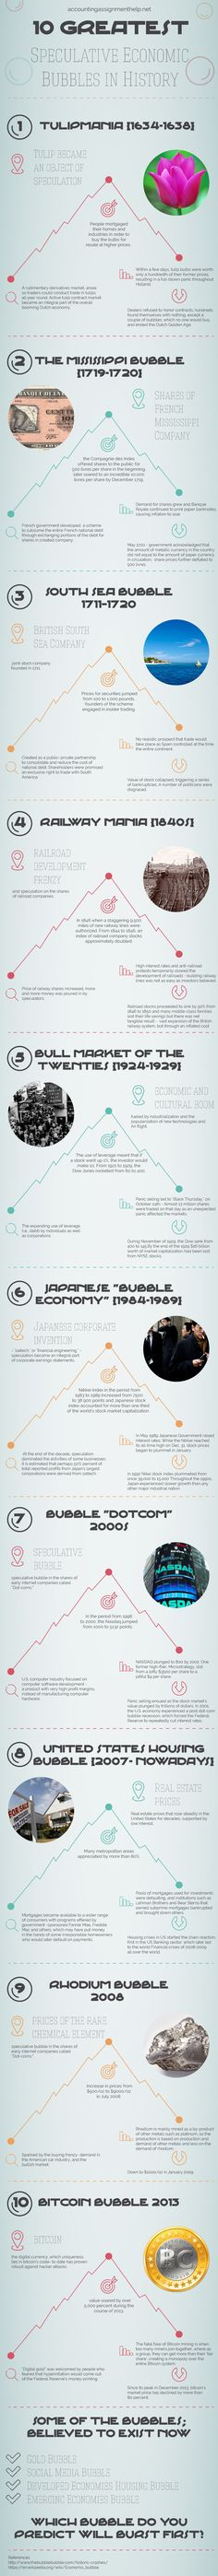 10 Greatest Economic Bubbles in History #infographic #Business #Economy #history